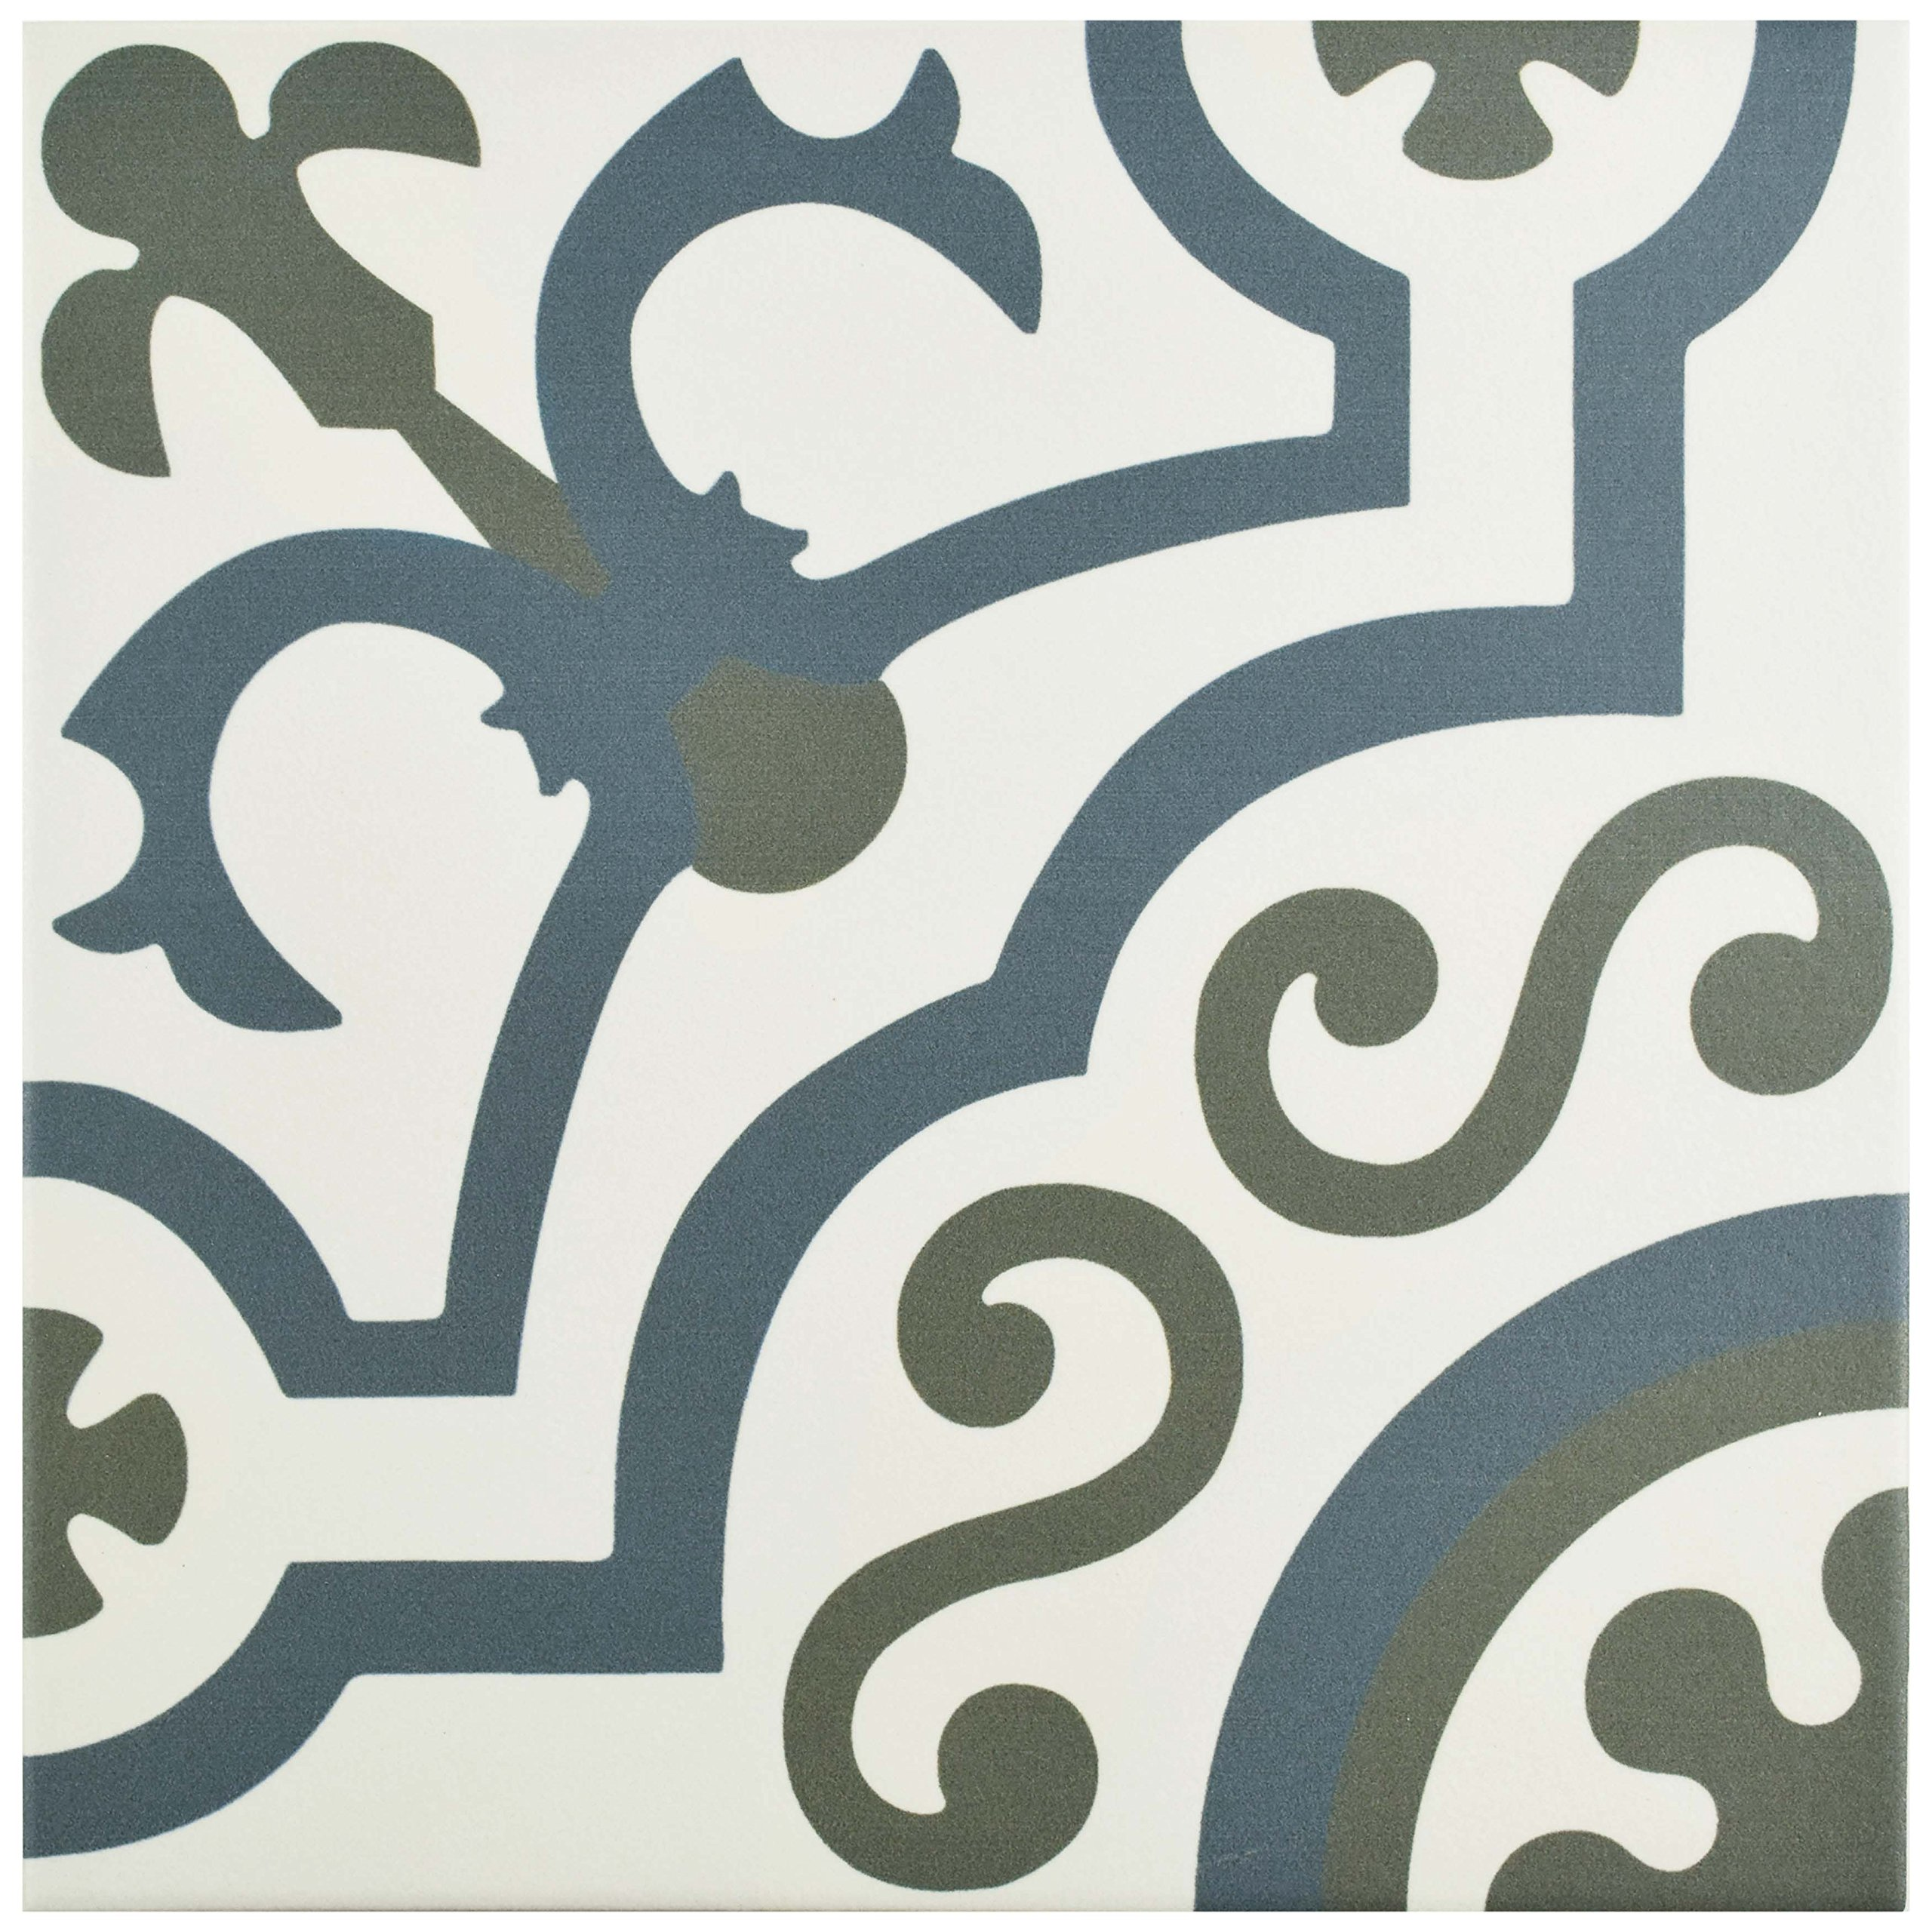 SomerTile FCD10HDU Hydro Ducados Porcelain Floor and Wall Tile, 9.75'' x 9.75'', White/Blue/Grey by SOMERTILE